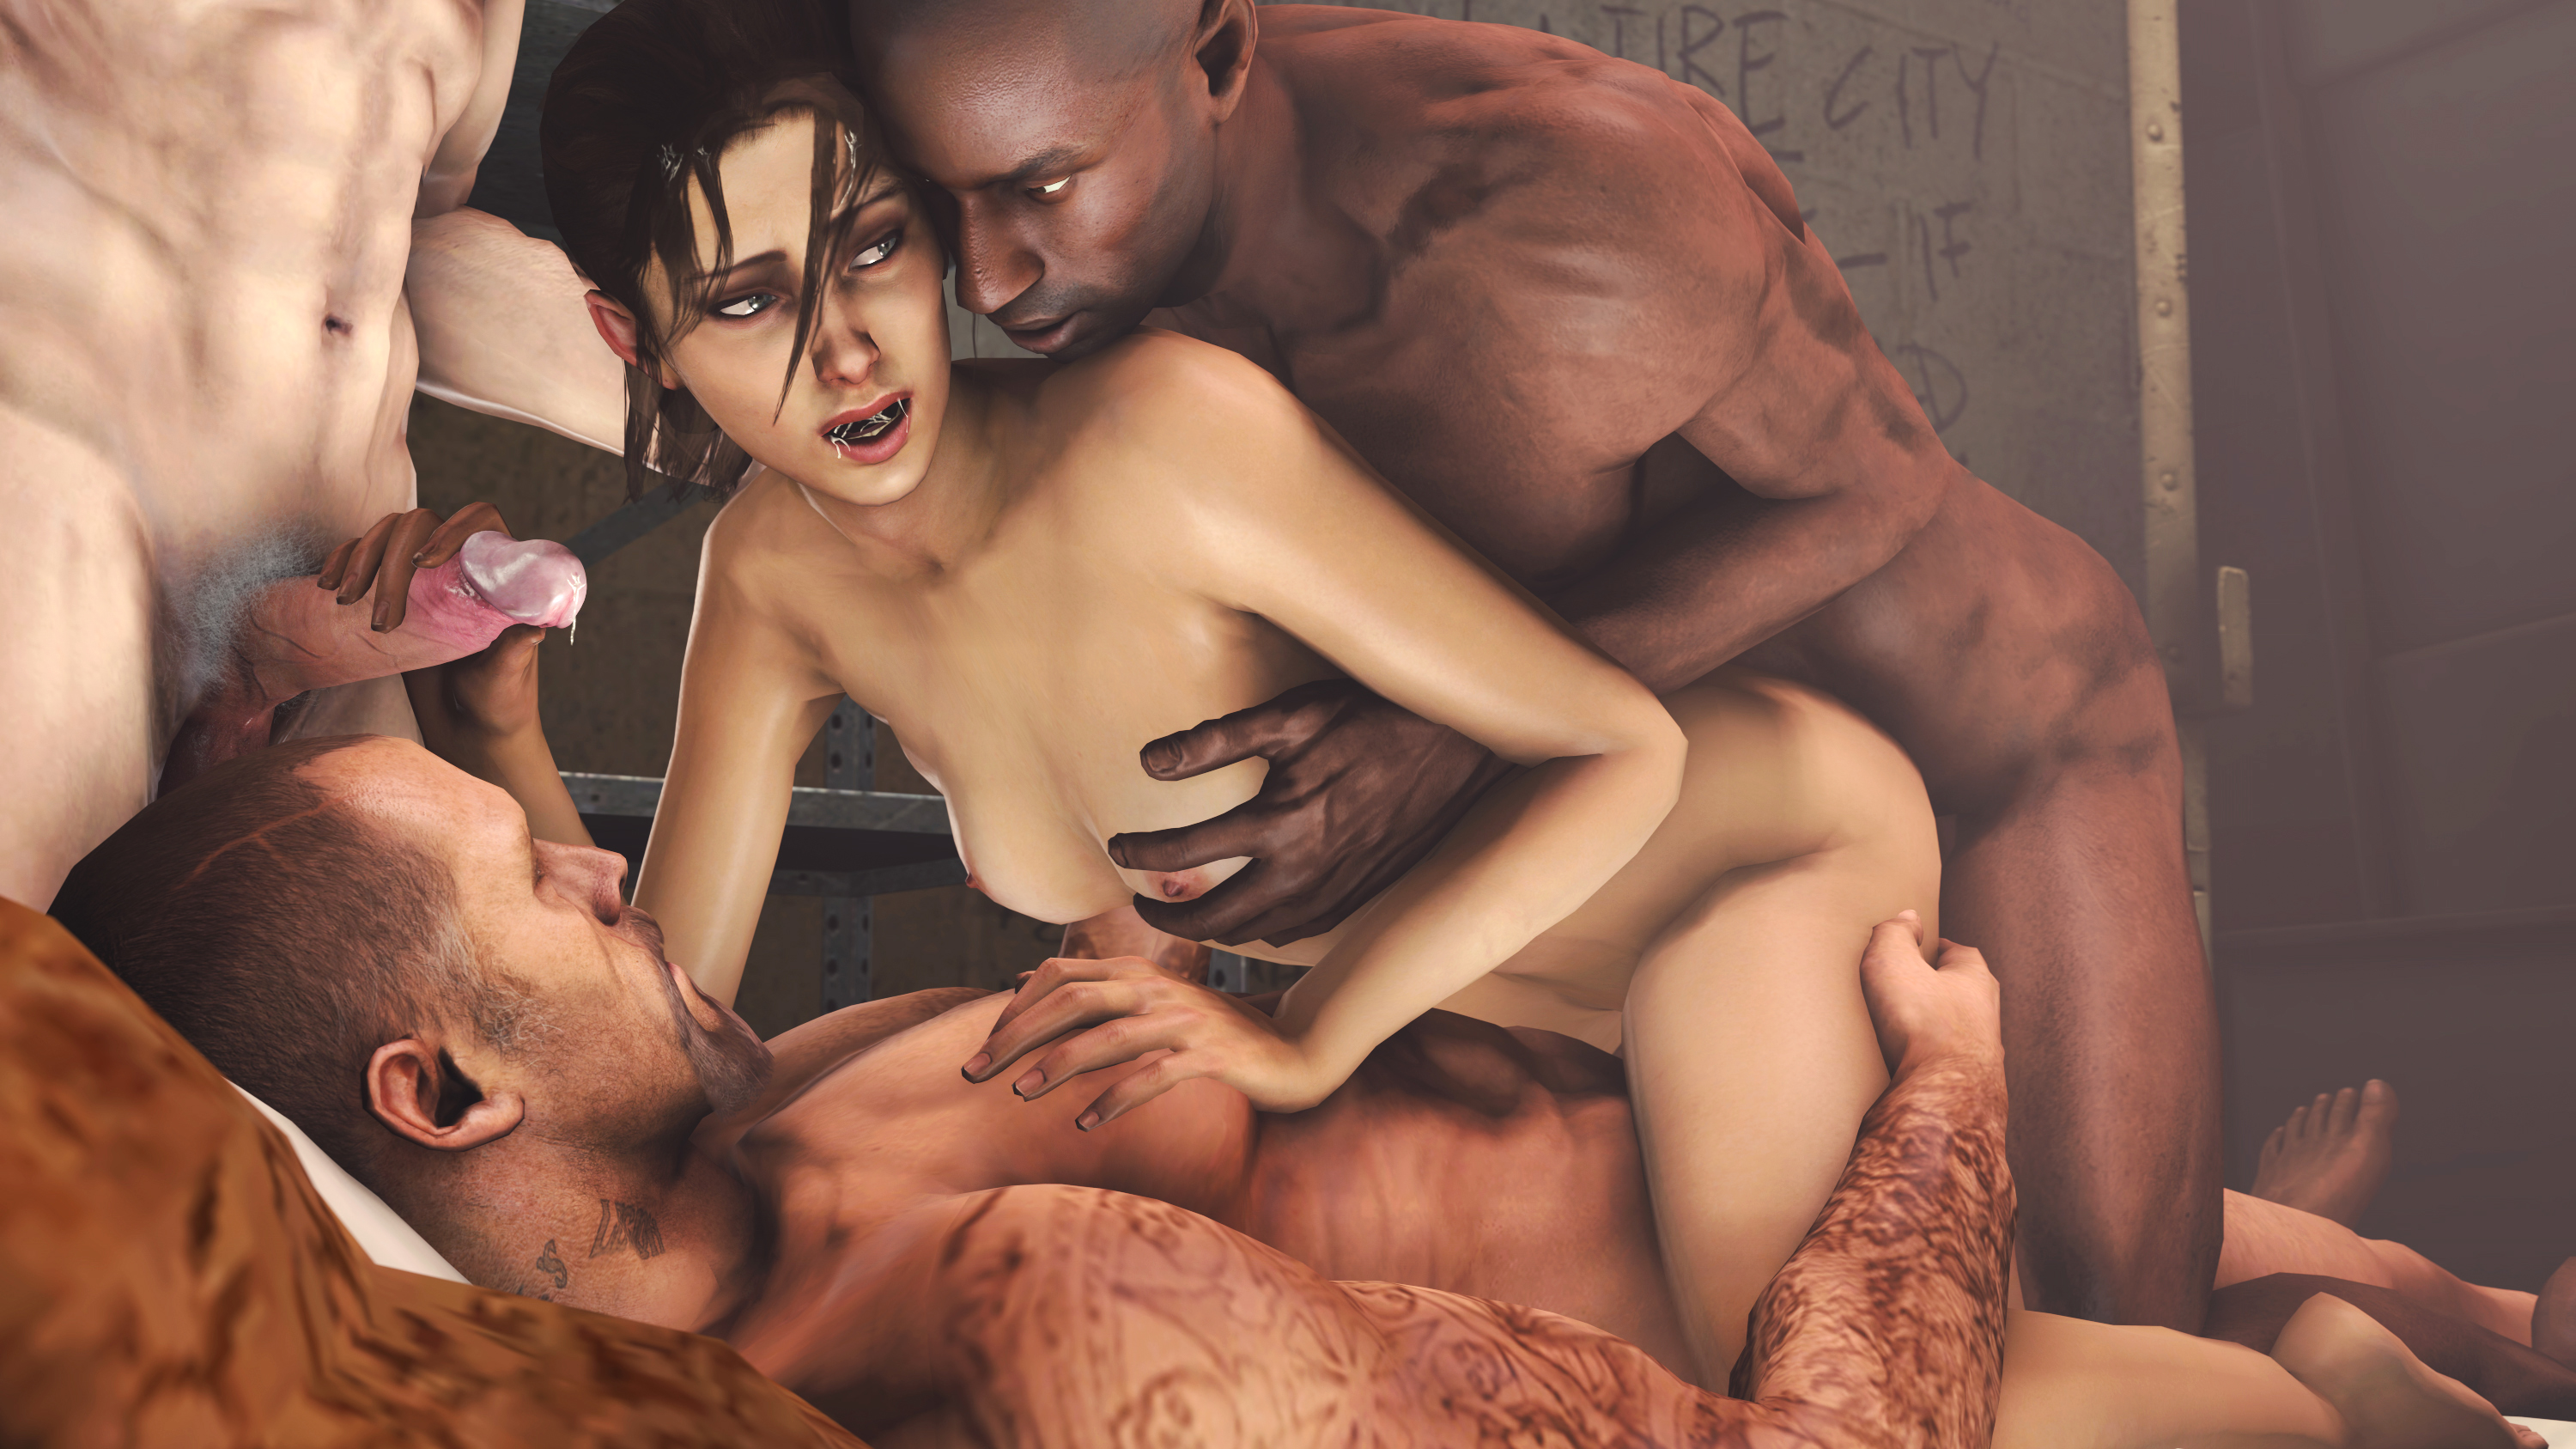 Left 4 dead 2 porn videos 3d nudes photo